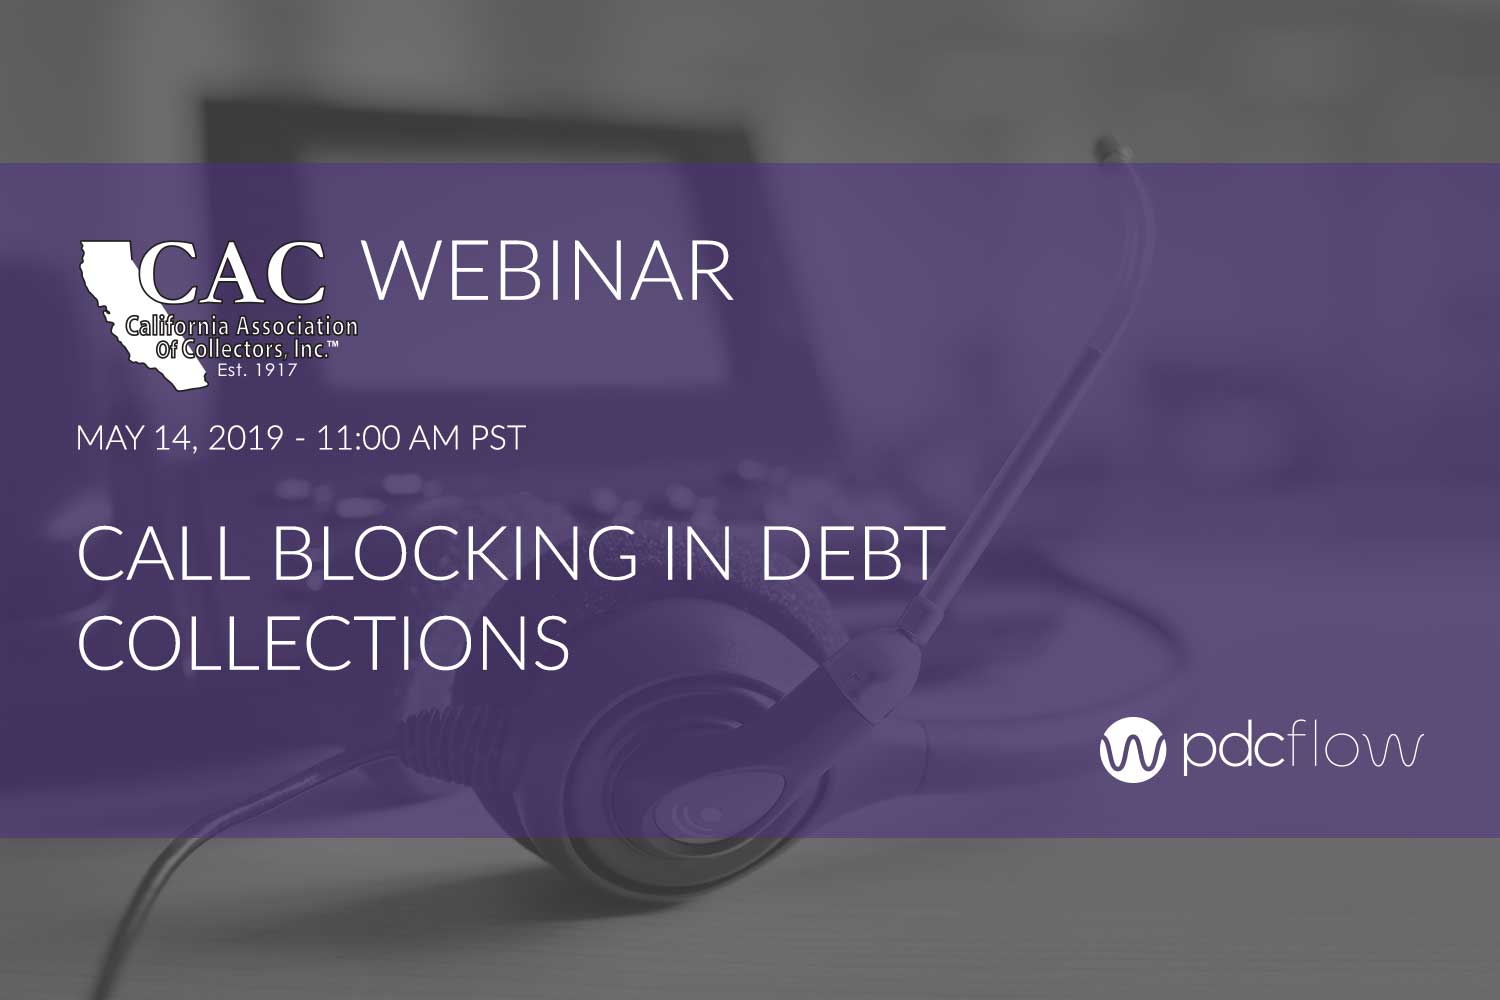 Call Blocking in Debt Collection Webinar